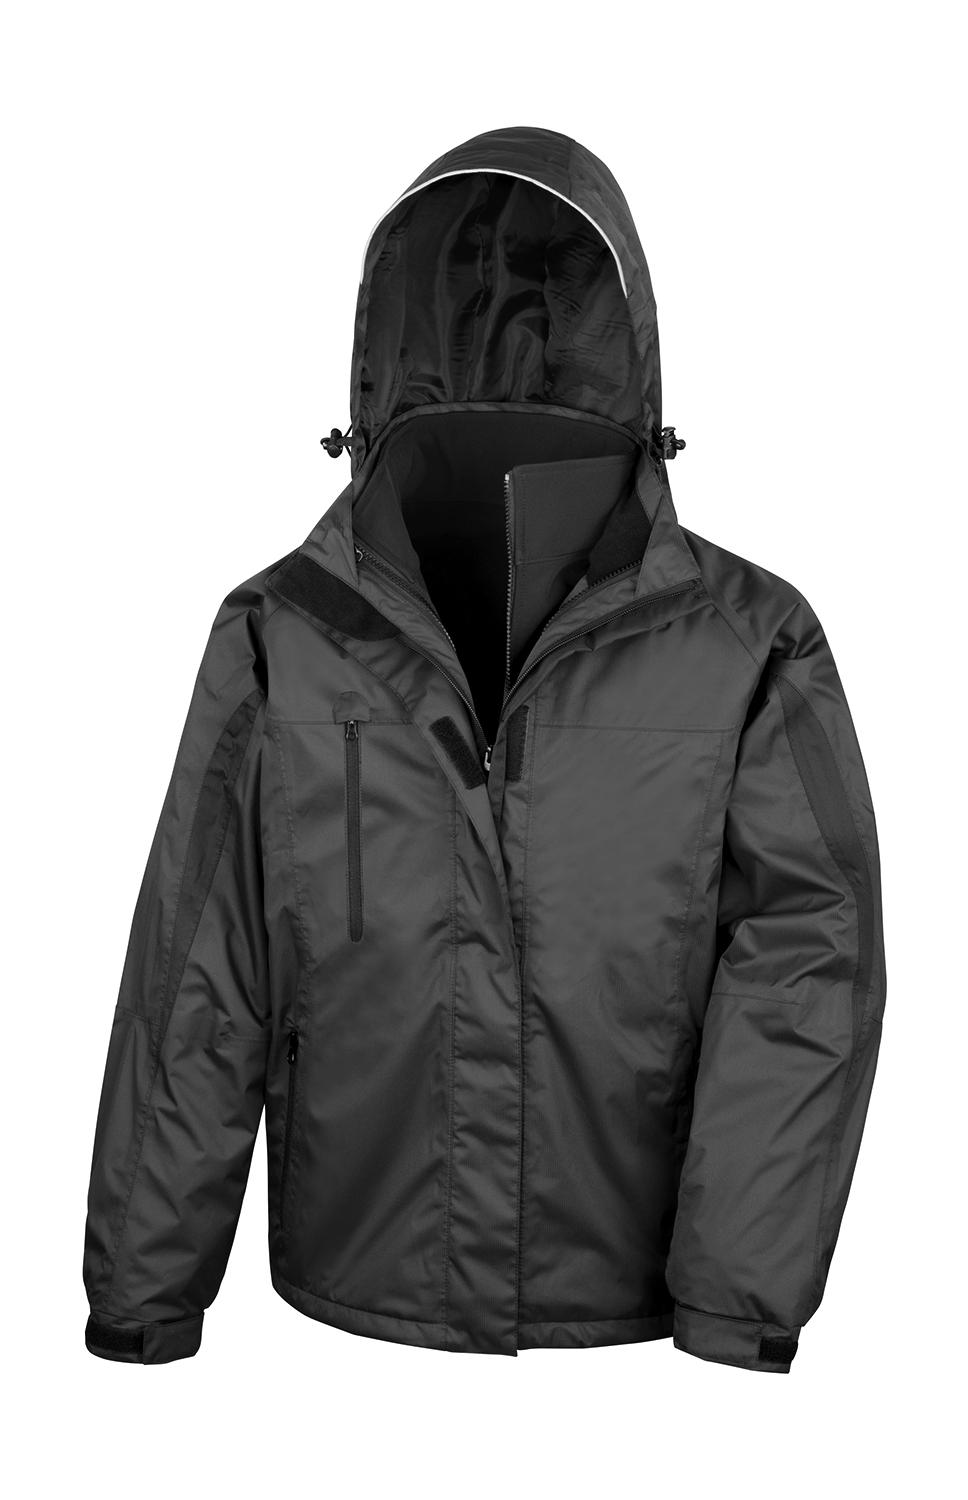 3-in-1 Journey Jacket